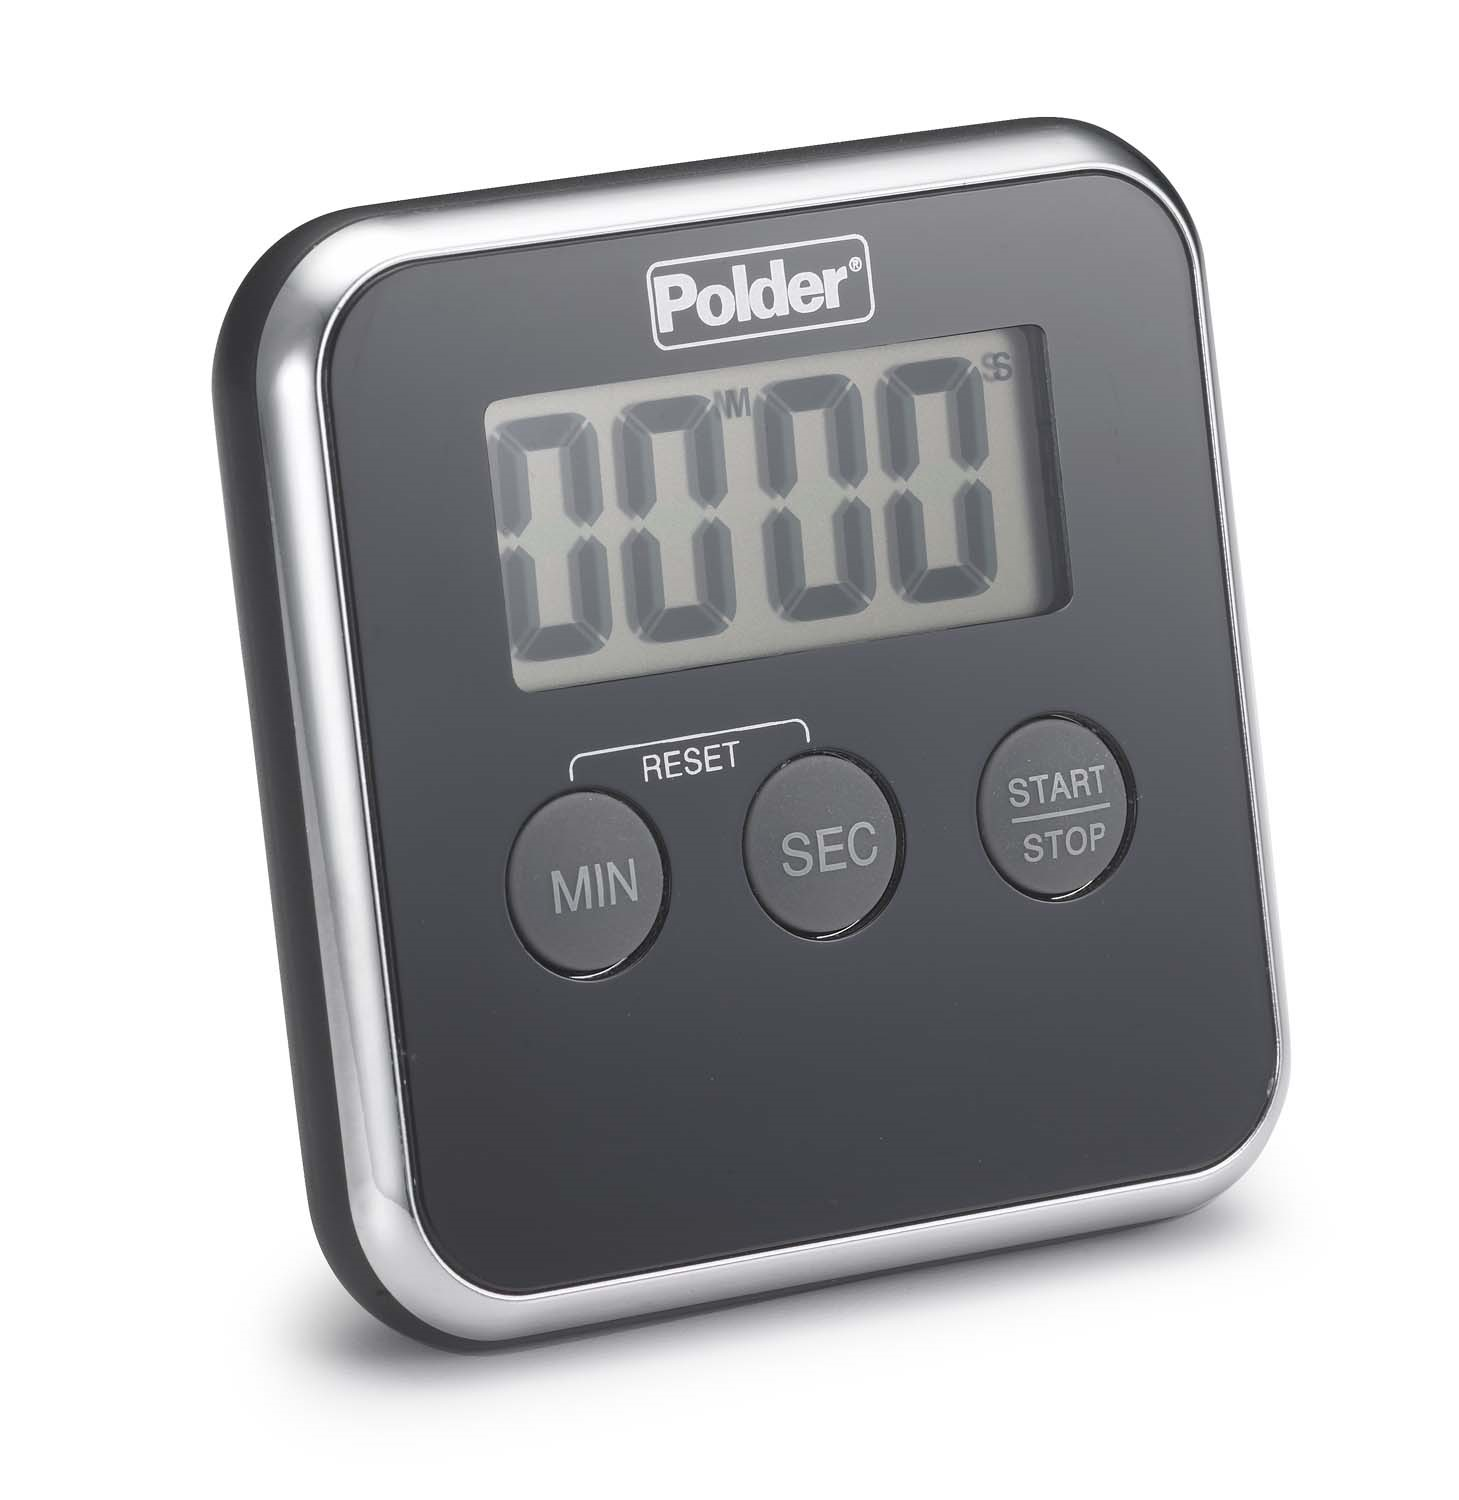 Polder TMR 606 95 Digital Kitchen Timer, Black